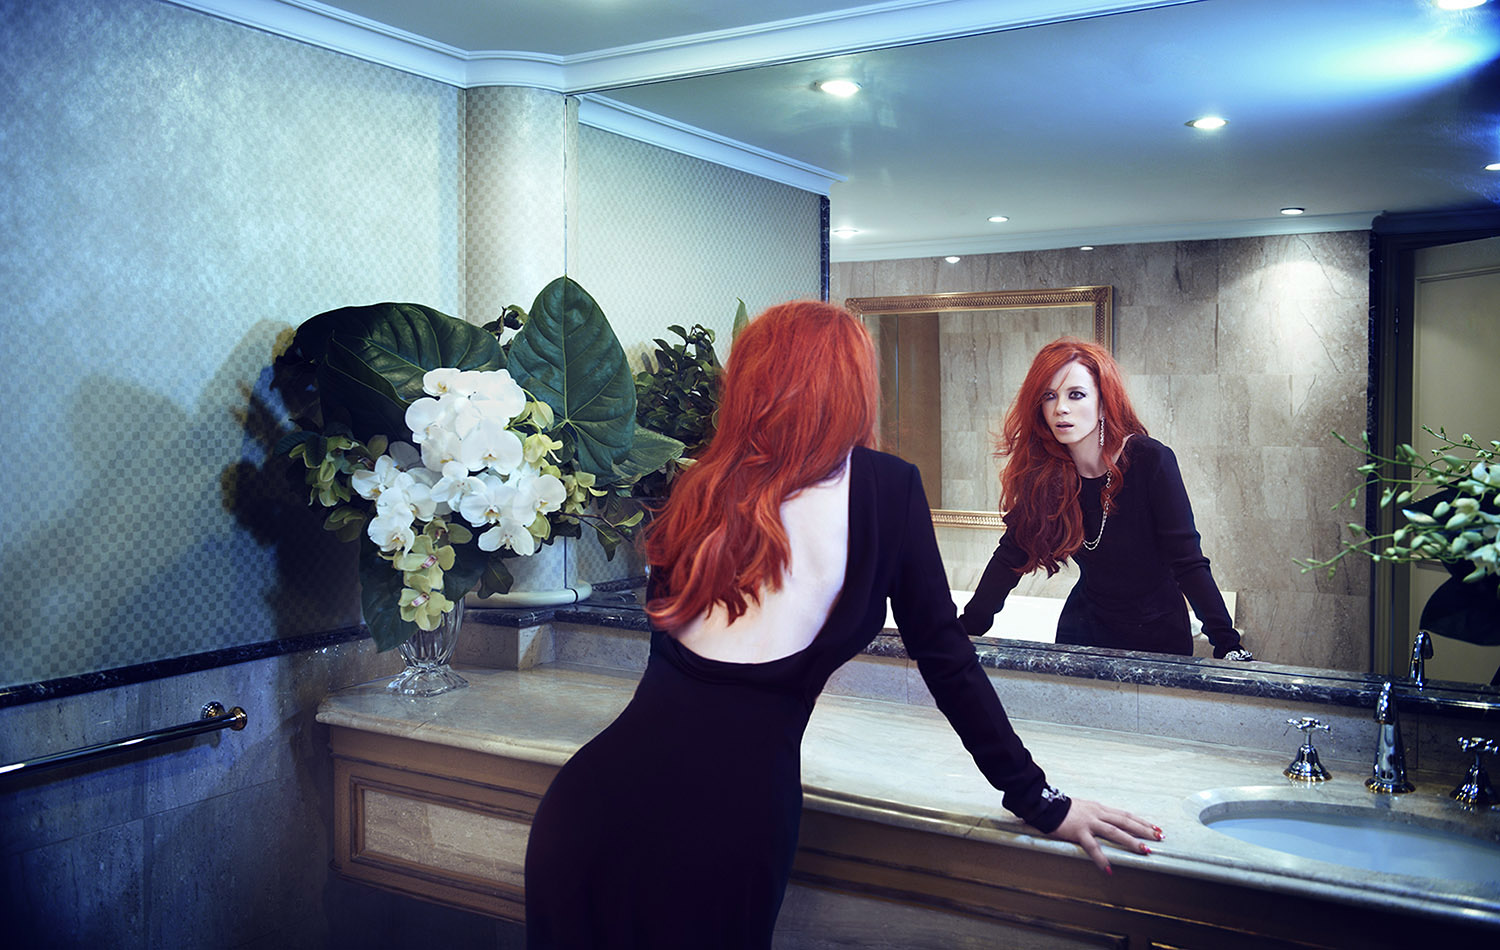 130306_HarpersBAZAAR_ShirleyManson_SH05_012WEBSITE